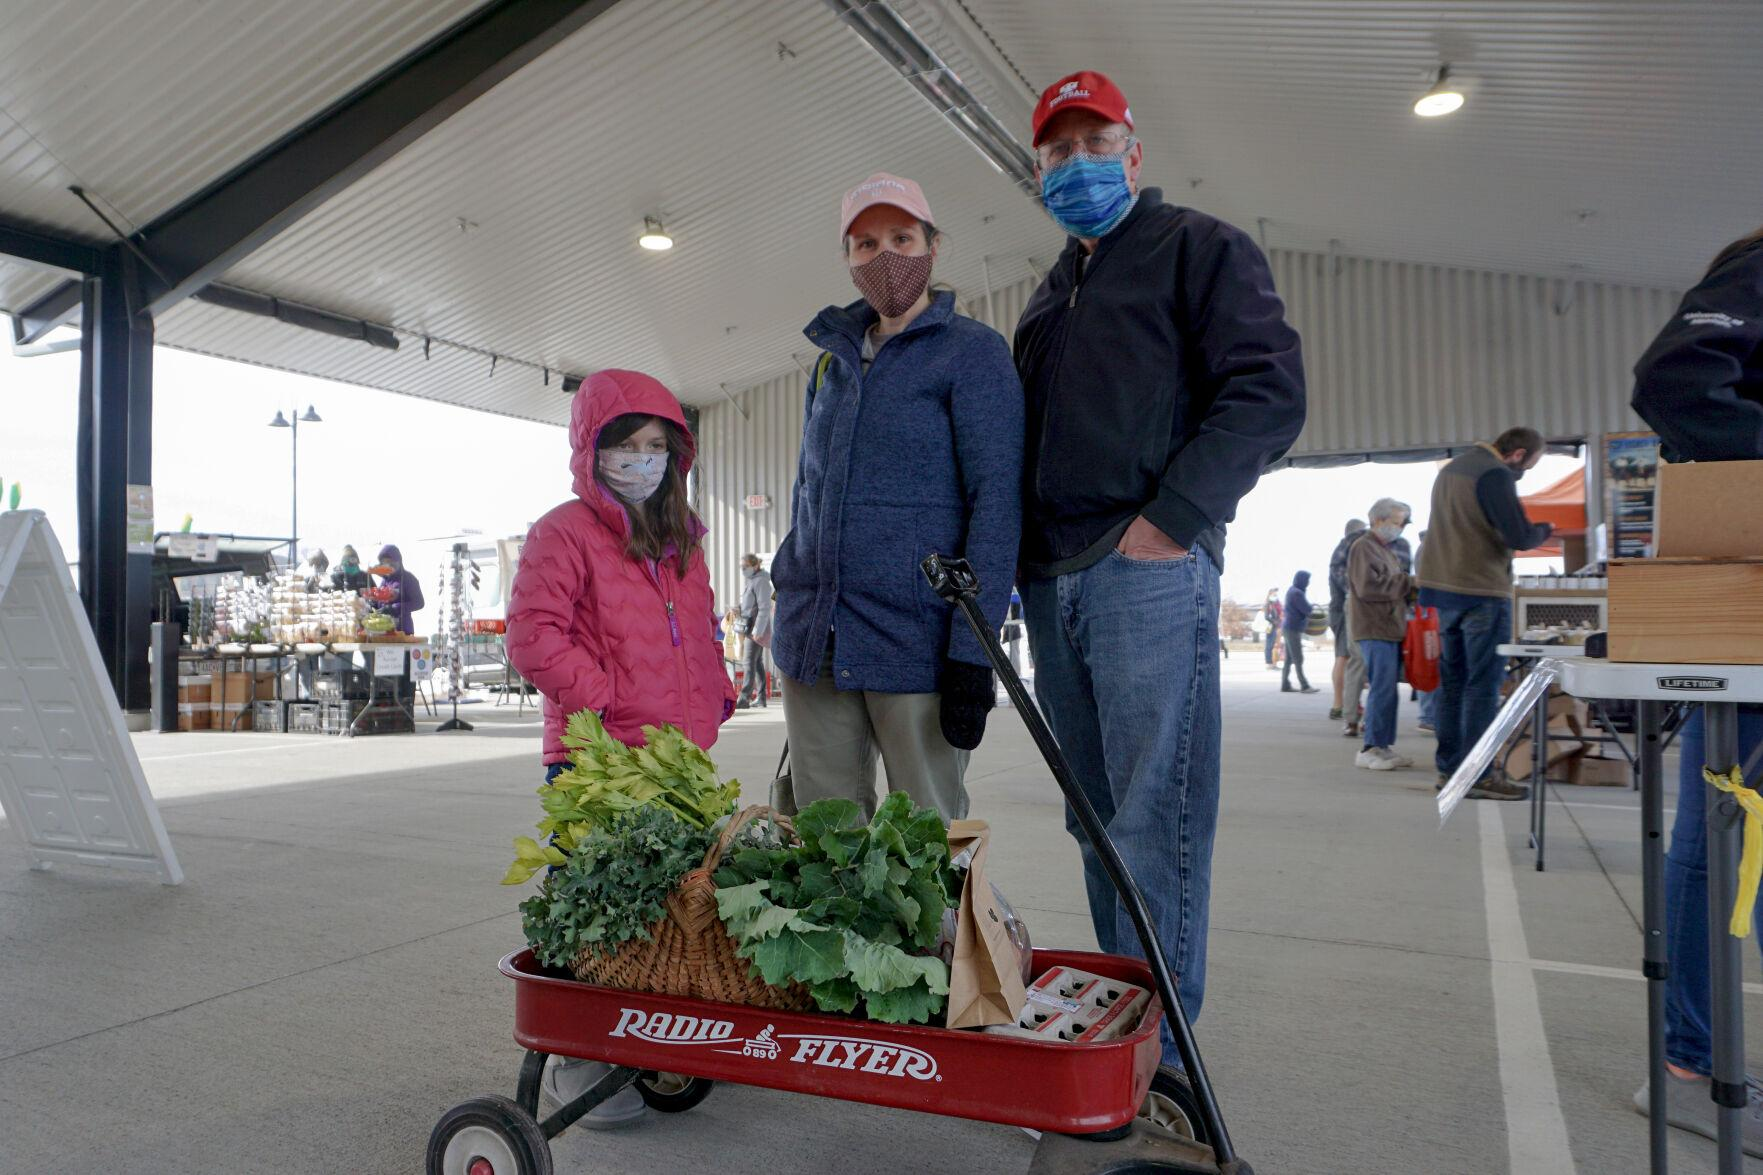 Carlann and her parents stand with their radio flyer wagon of groceries